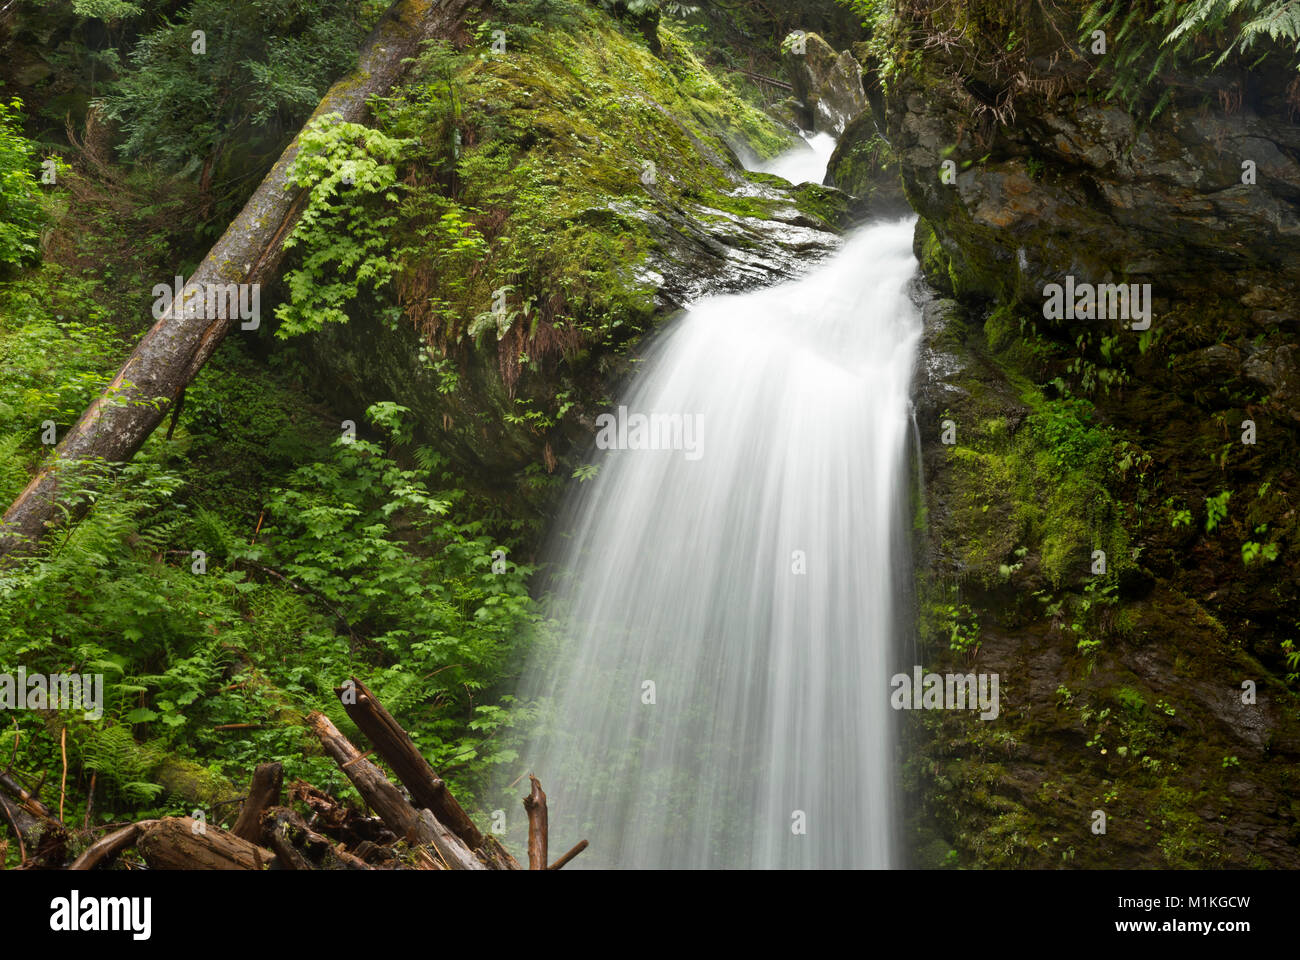 WA13141-00...WASHINGTON - One of many unnamed waterfalls descending from the snow-capped peaks to the Quinault River - Stock Image